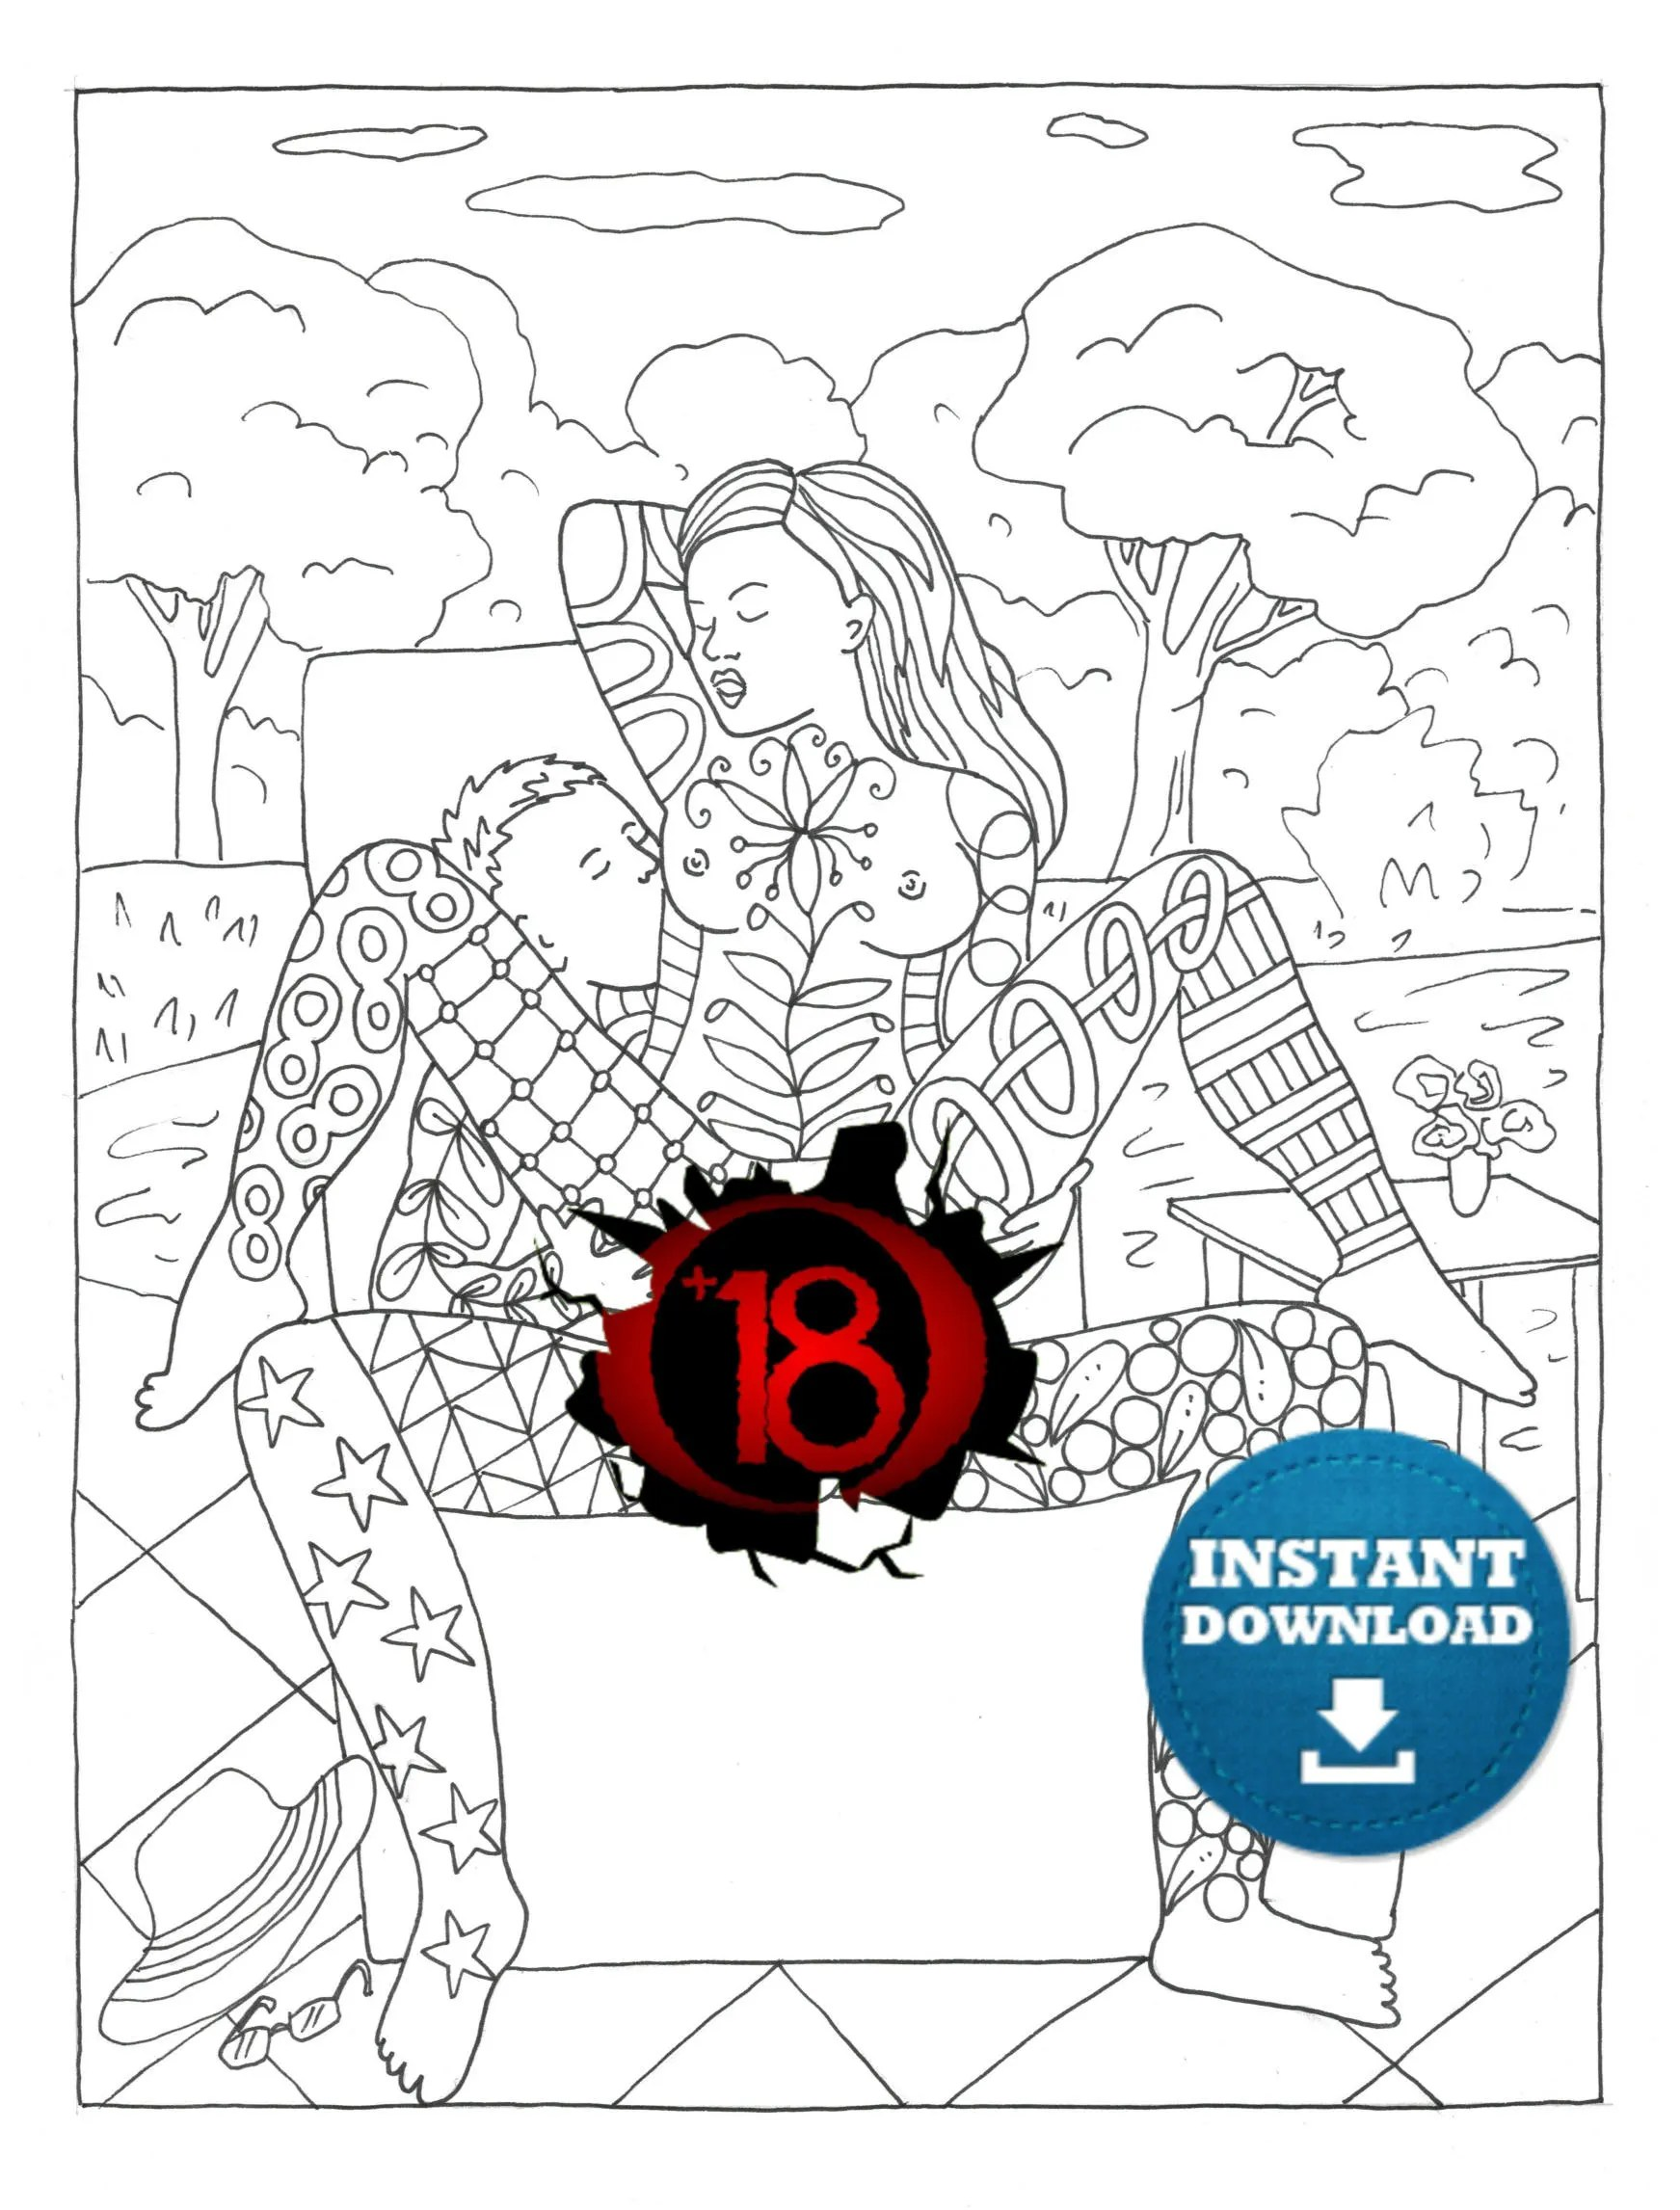 X Rated Coloring Books : rated, coloring, books, Instant, Download, Positions, Coloring, Naughty, Adult